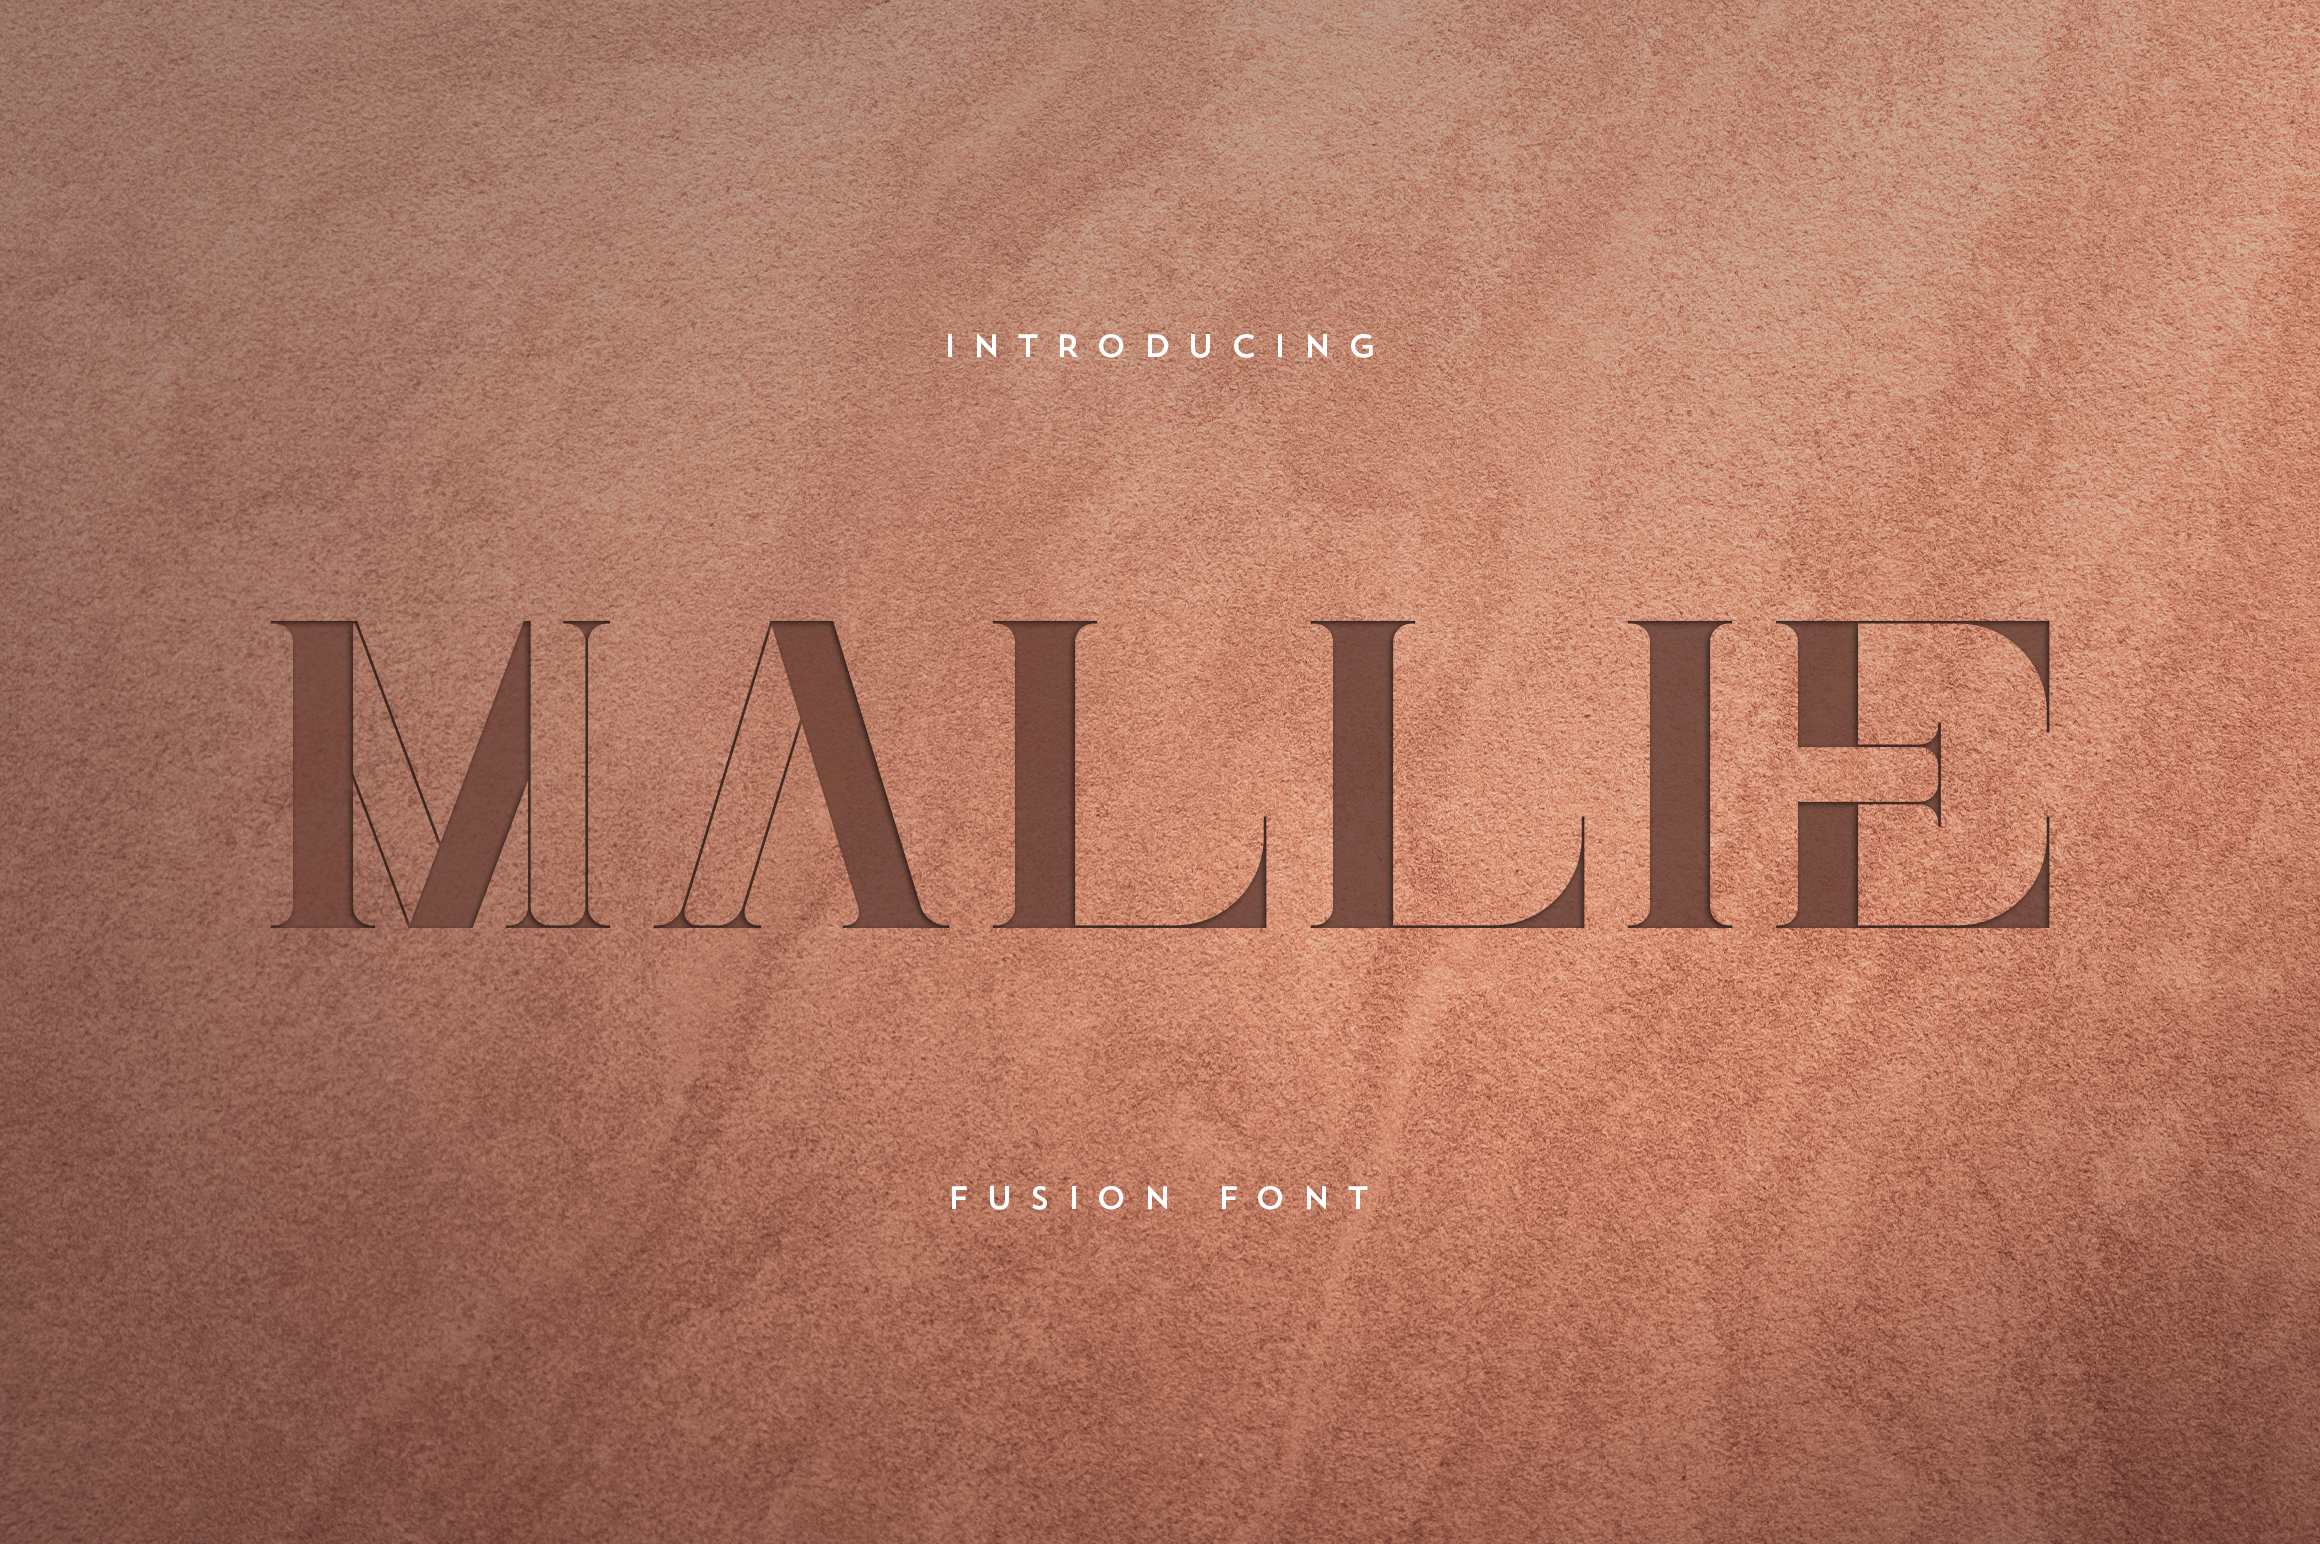 Mallie - Fusion font example image 1